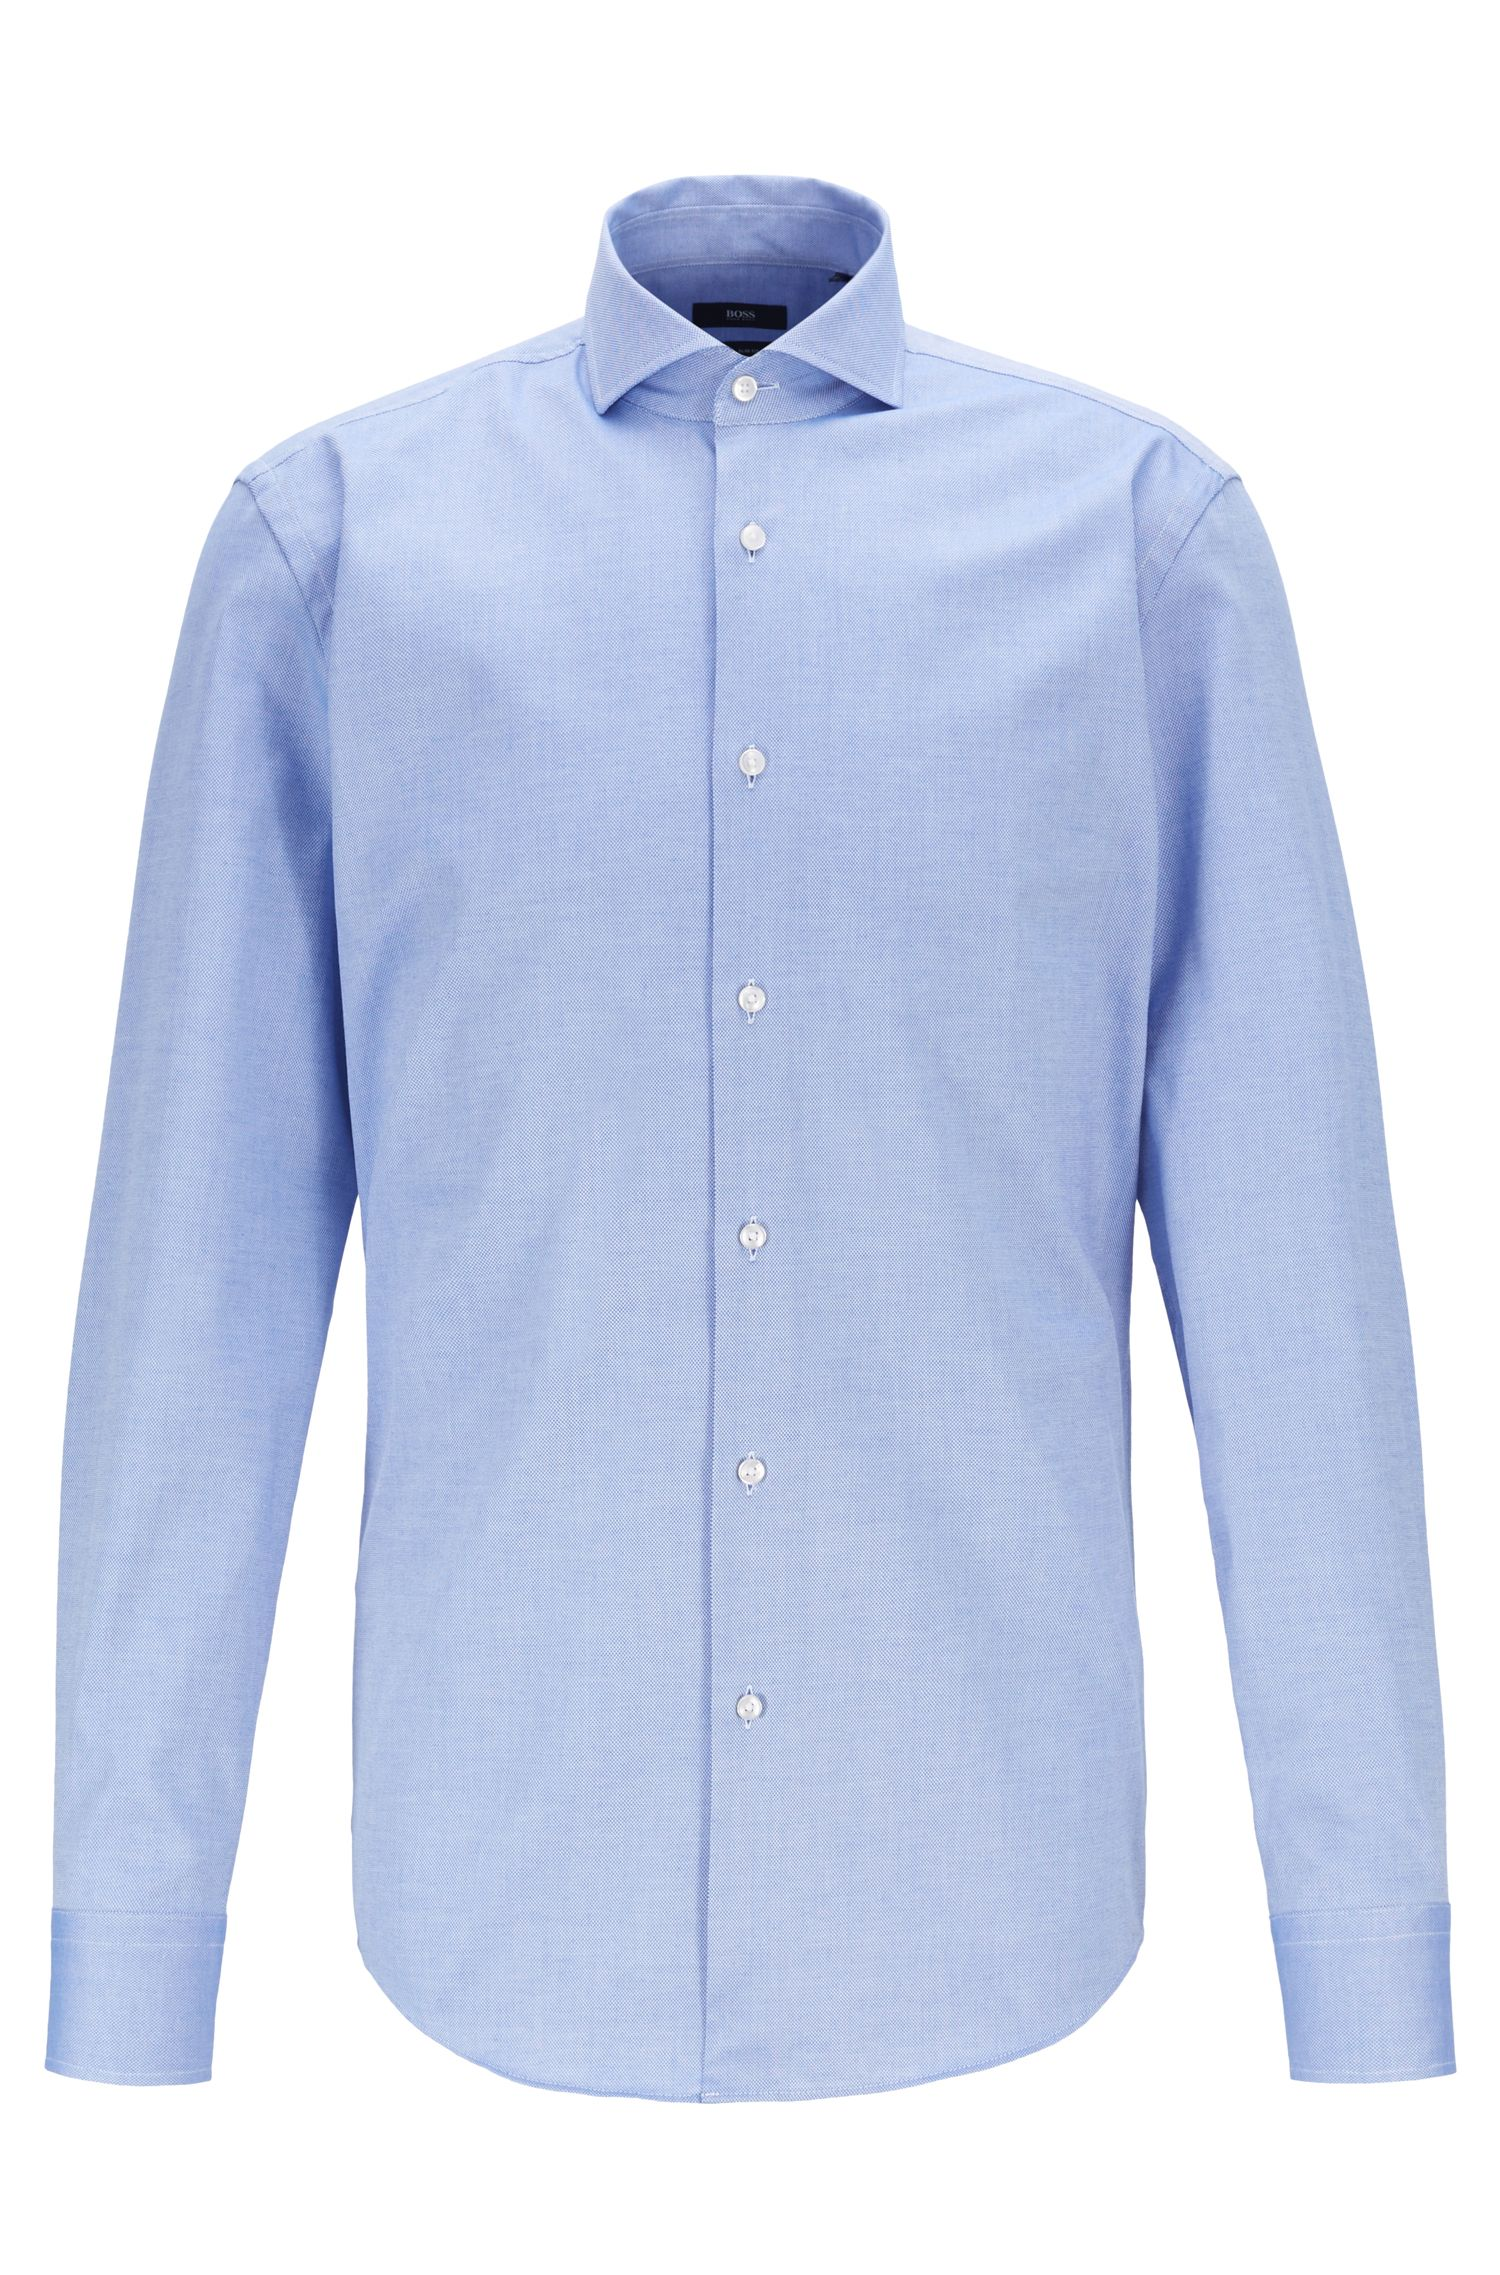 Travel Line slim-fit shirt in Royal Oxford stretch cotton, Blue